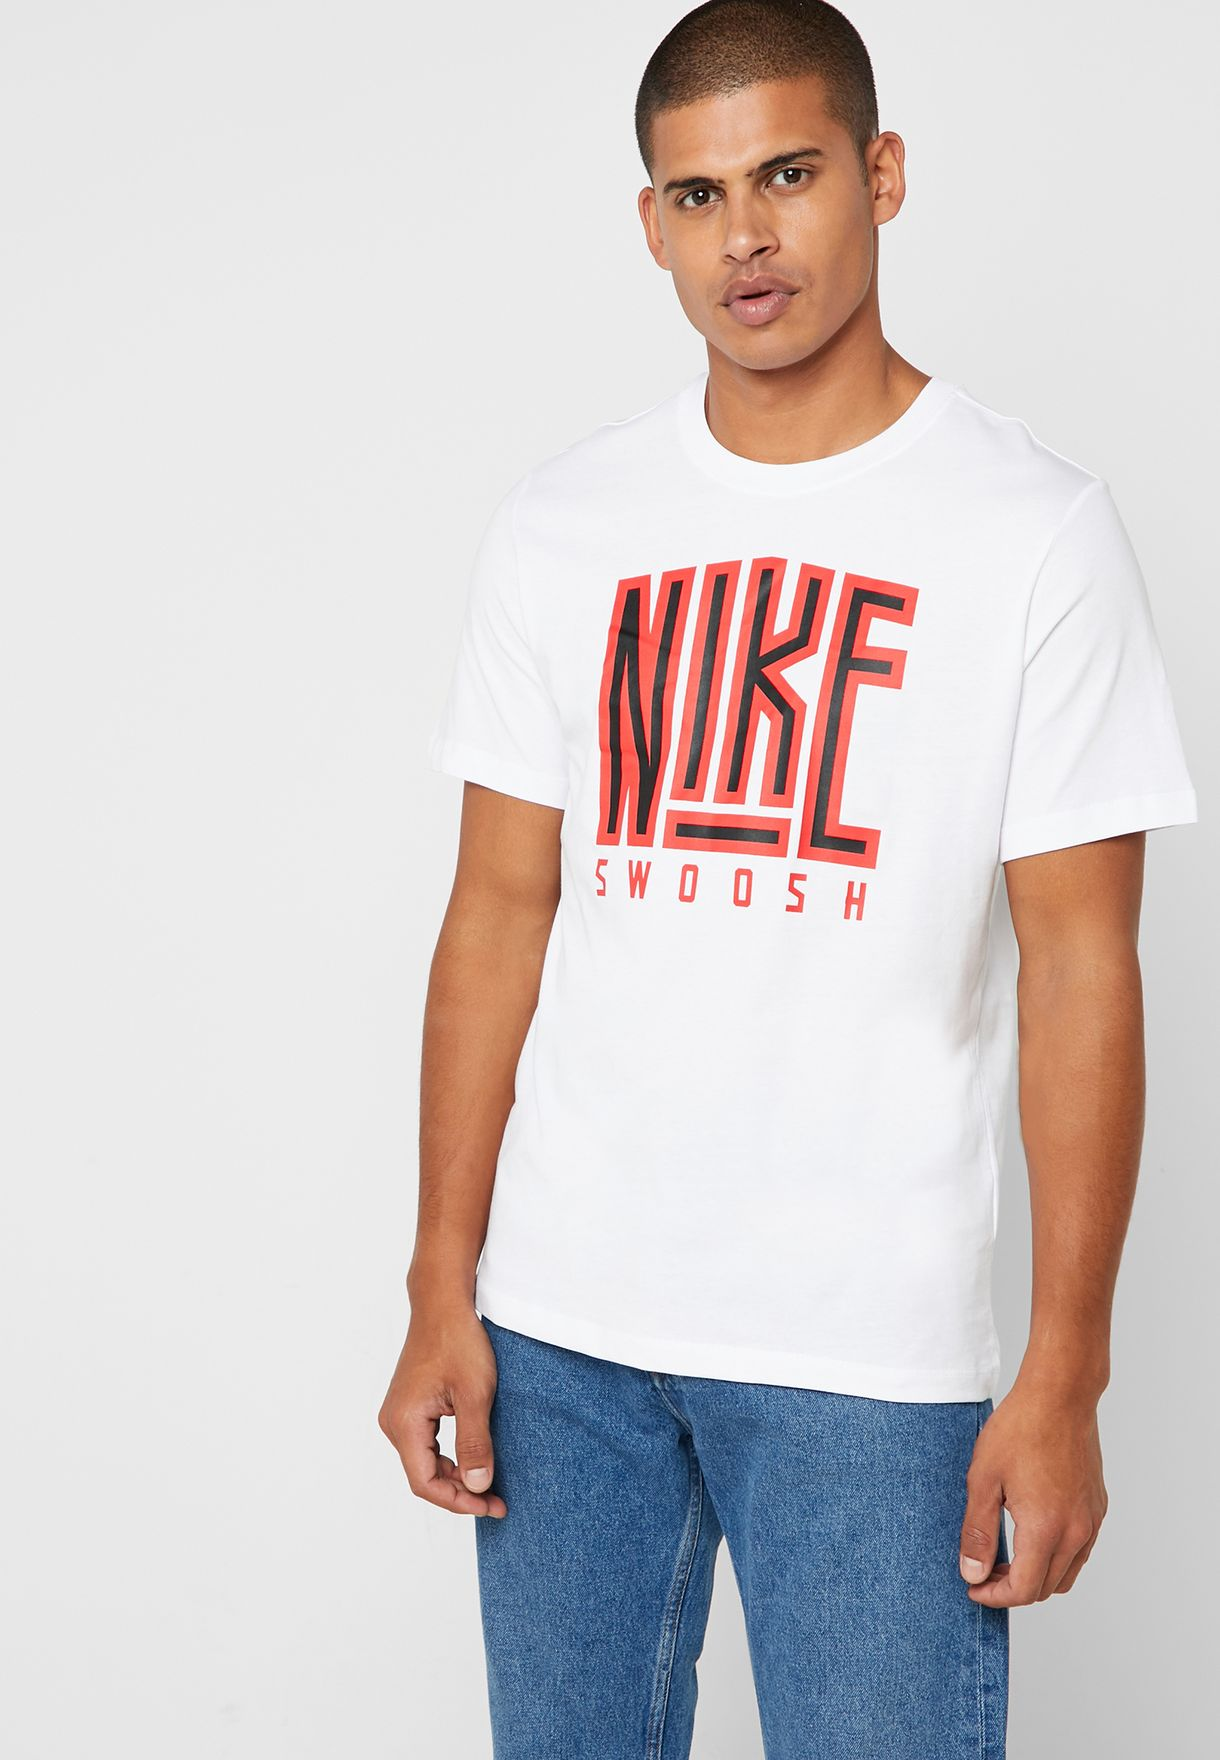 b0b0604b Shop Nike white NSW Swoosh Core T-Shirt AR5025-100 for Men in Saudi -  72704AT63XZP